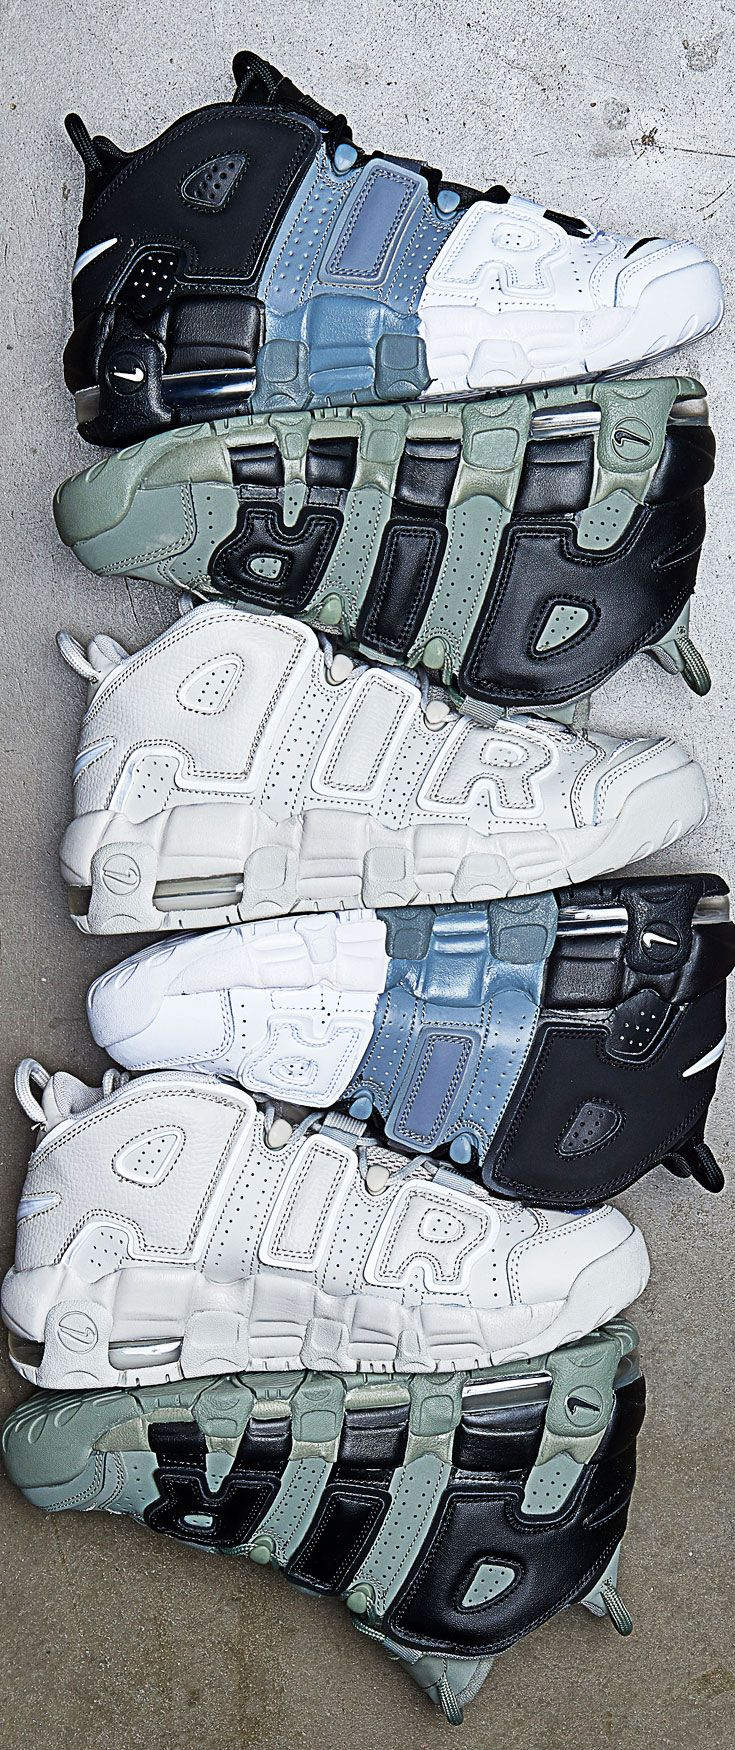 Kids  Nike Air More Uptempo. Available in 10+ colors now!  Nike  Uptempo   Nikeshoes  kidsshoes  sneakers 7a1b6ab59cbf